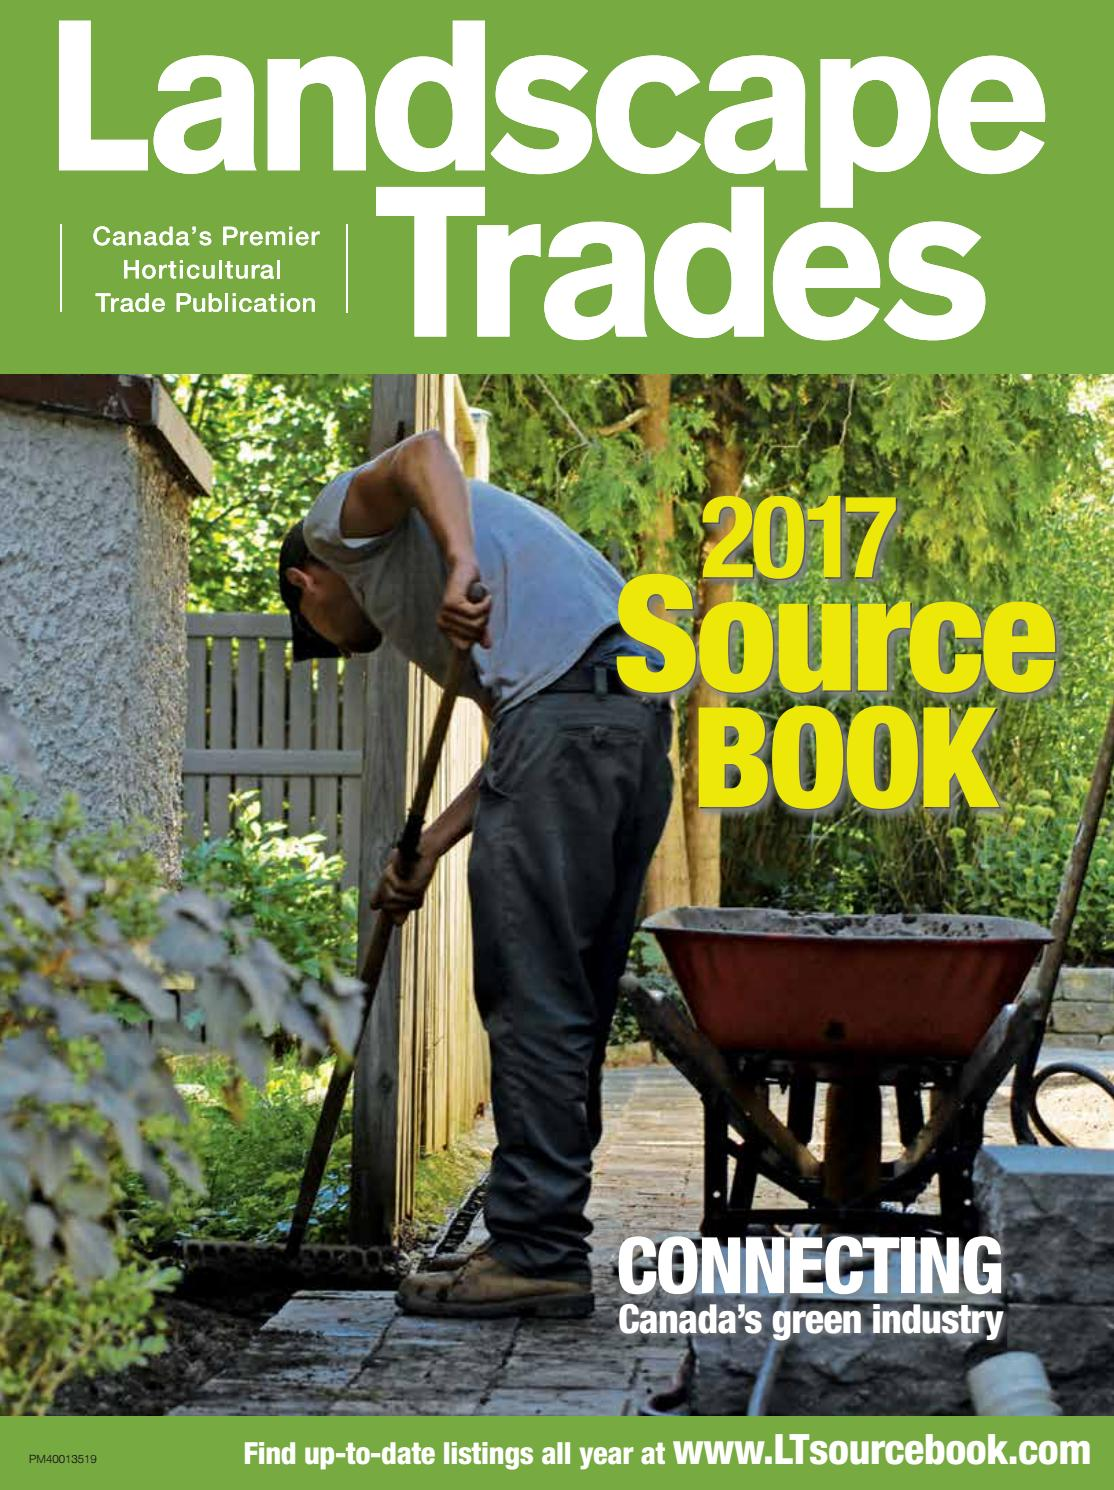 b4dbcf63c06 May 2017 Landscape Trades Source Book by Landscape Ontario - issuu